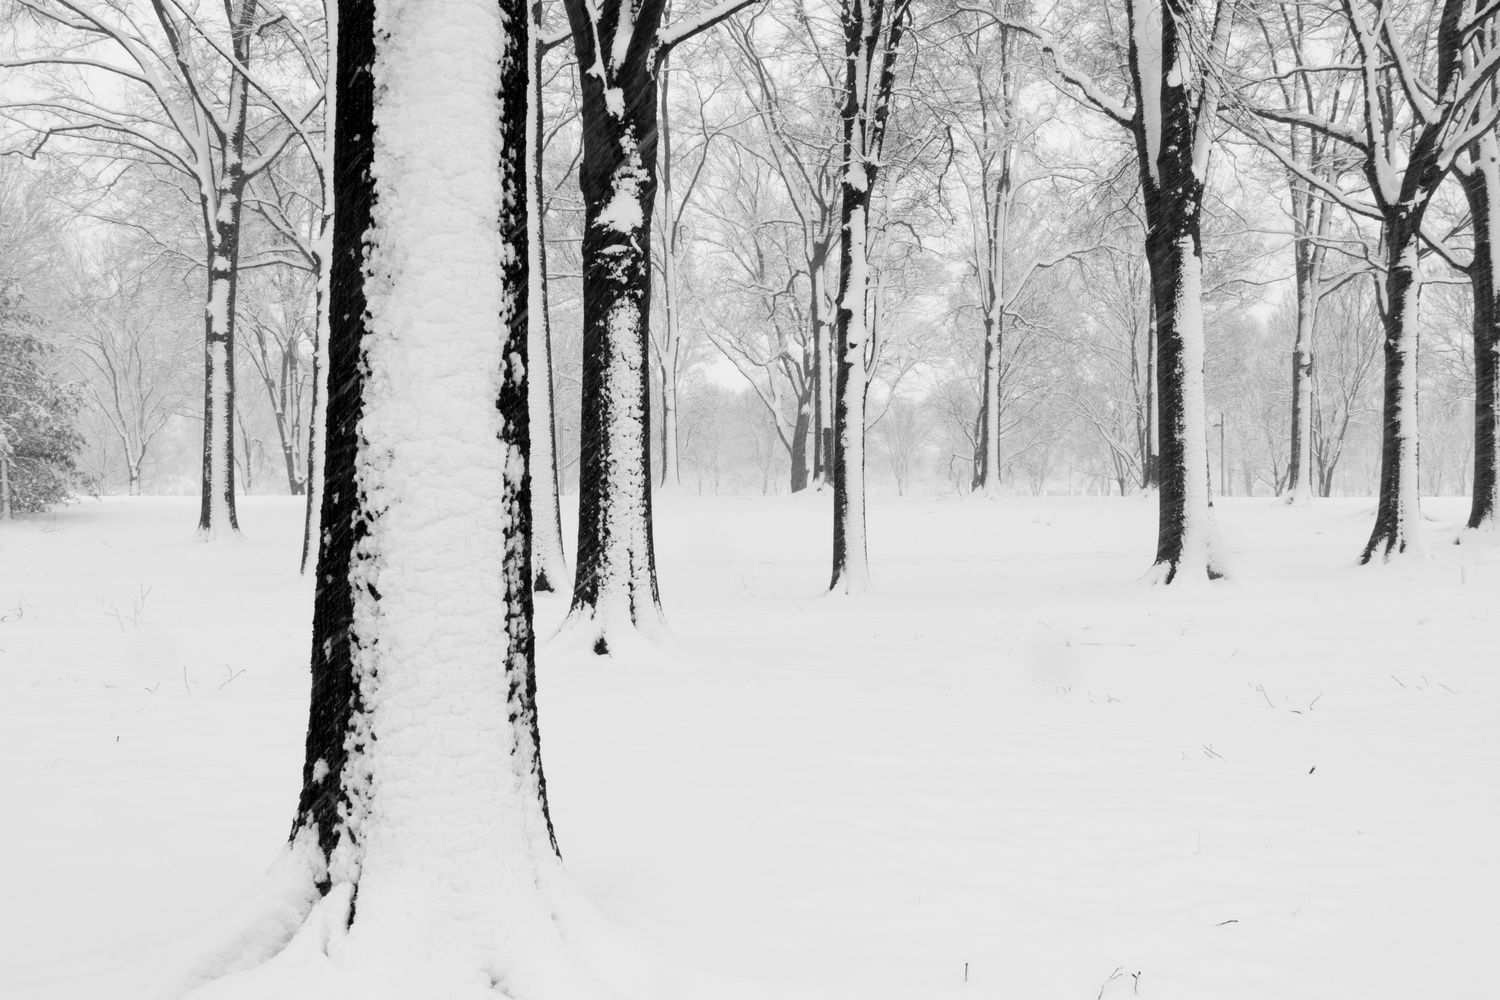 Trees on the Washington DC Mall in a snow storm by Paul FIlios